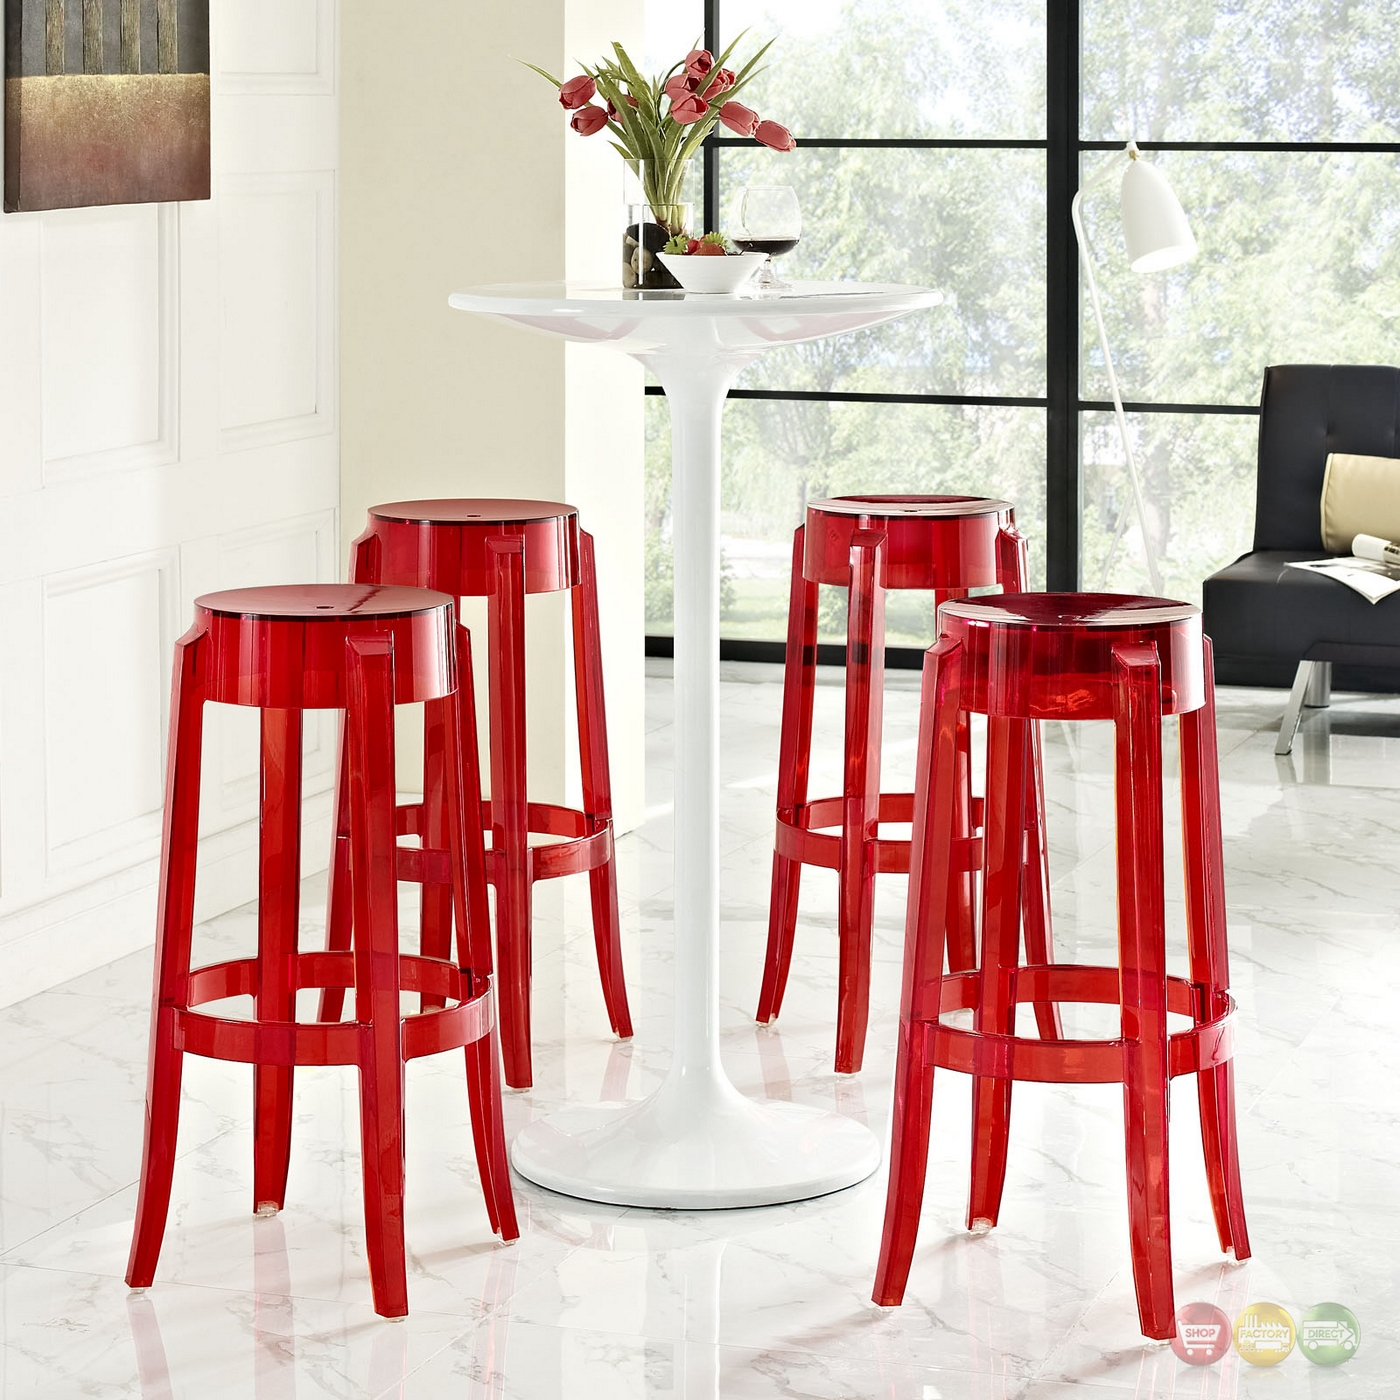 Set Of 4 Casper Modern Acrylic Bar Stool With Foot Ring Red